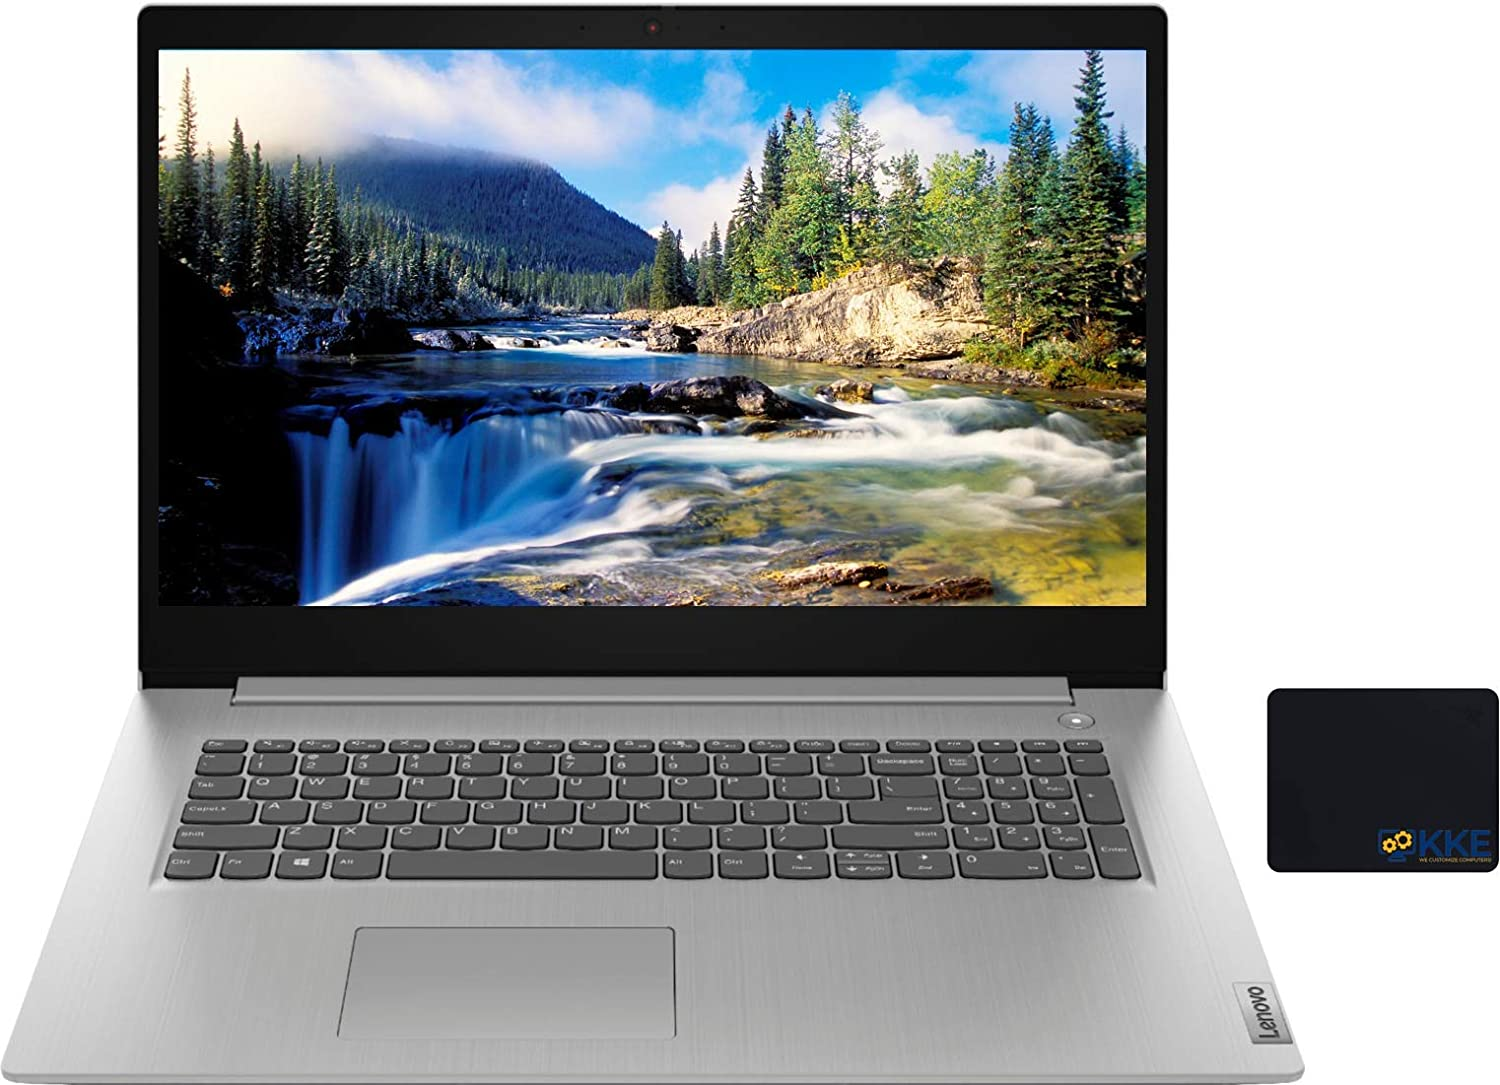 "Lenovo IdeaPad 3 Laptop, 17.3"" HD+ Screen, AMD Ryzen 7-3700U Processor up to 4.0GHz, 20GB DDR4 RAM, 512GB PCIe SSD + 1TB HDD, Webcam, WiFi, Bluetooth, Windows 10, Platinum Grey, KKE Mousepad"